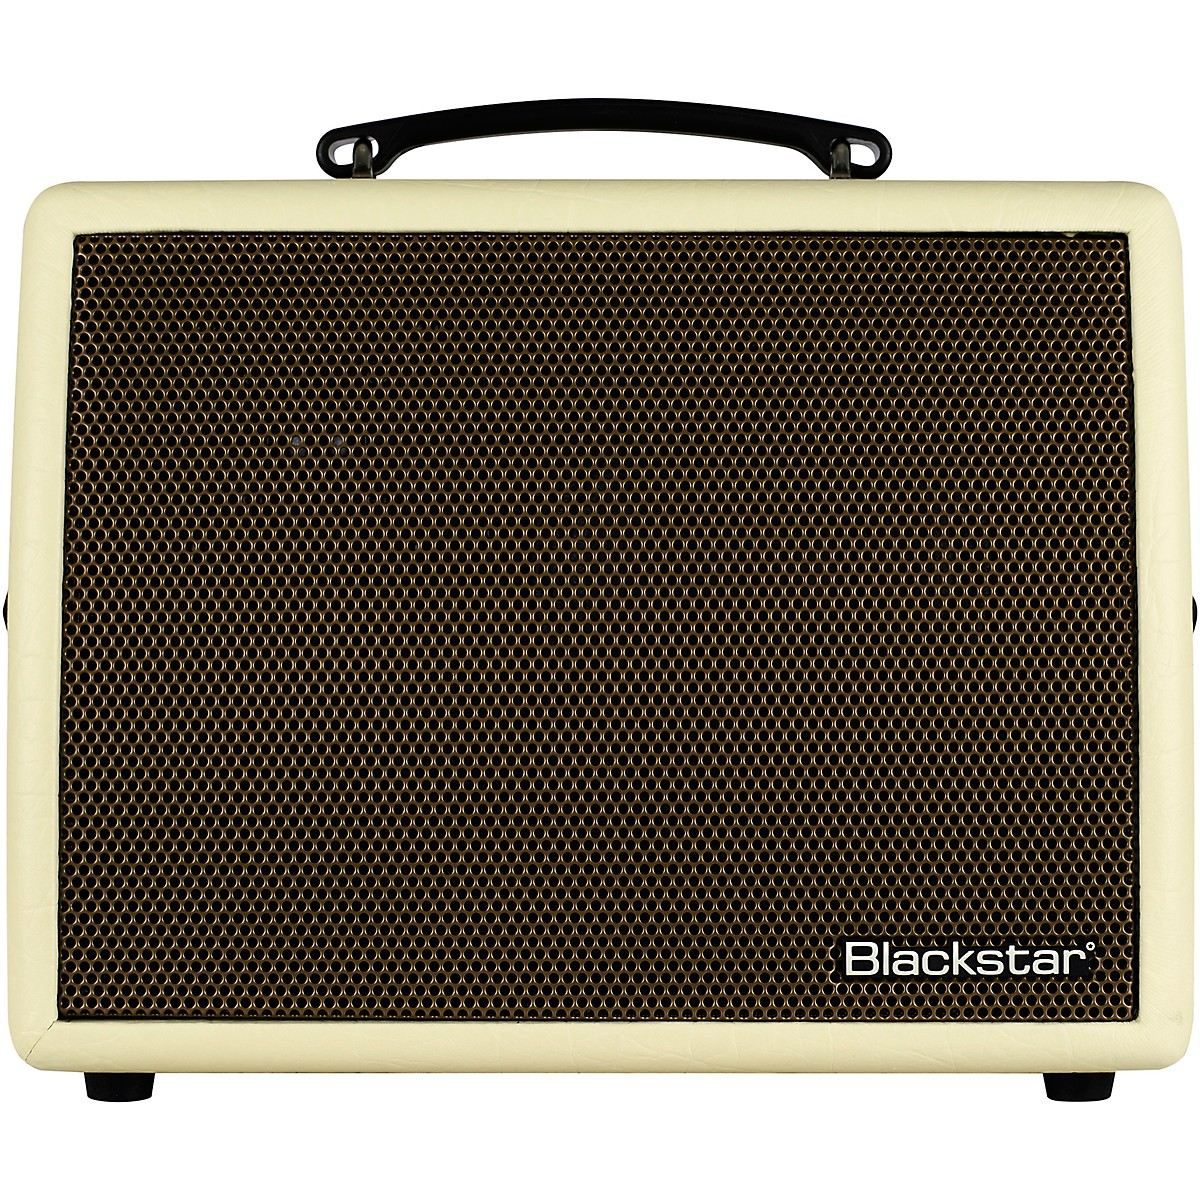 Blackstar Sonnet 60 60W 1x6.5 Acoustic Guitar Combo Amplifier